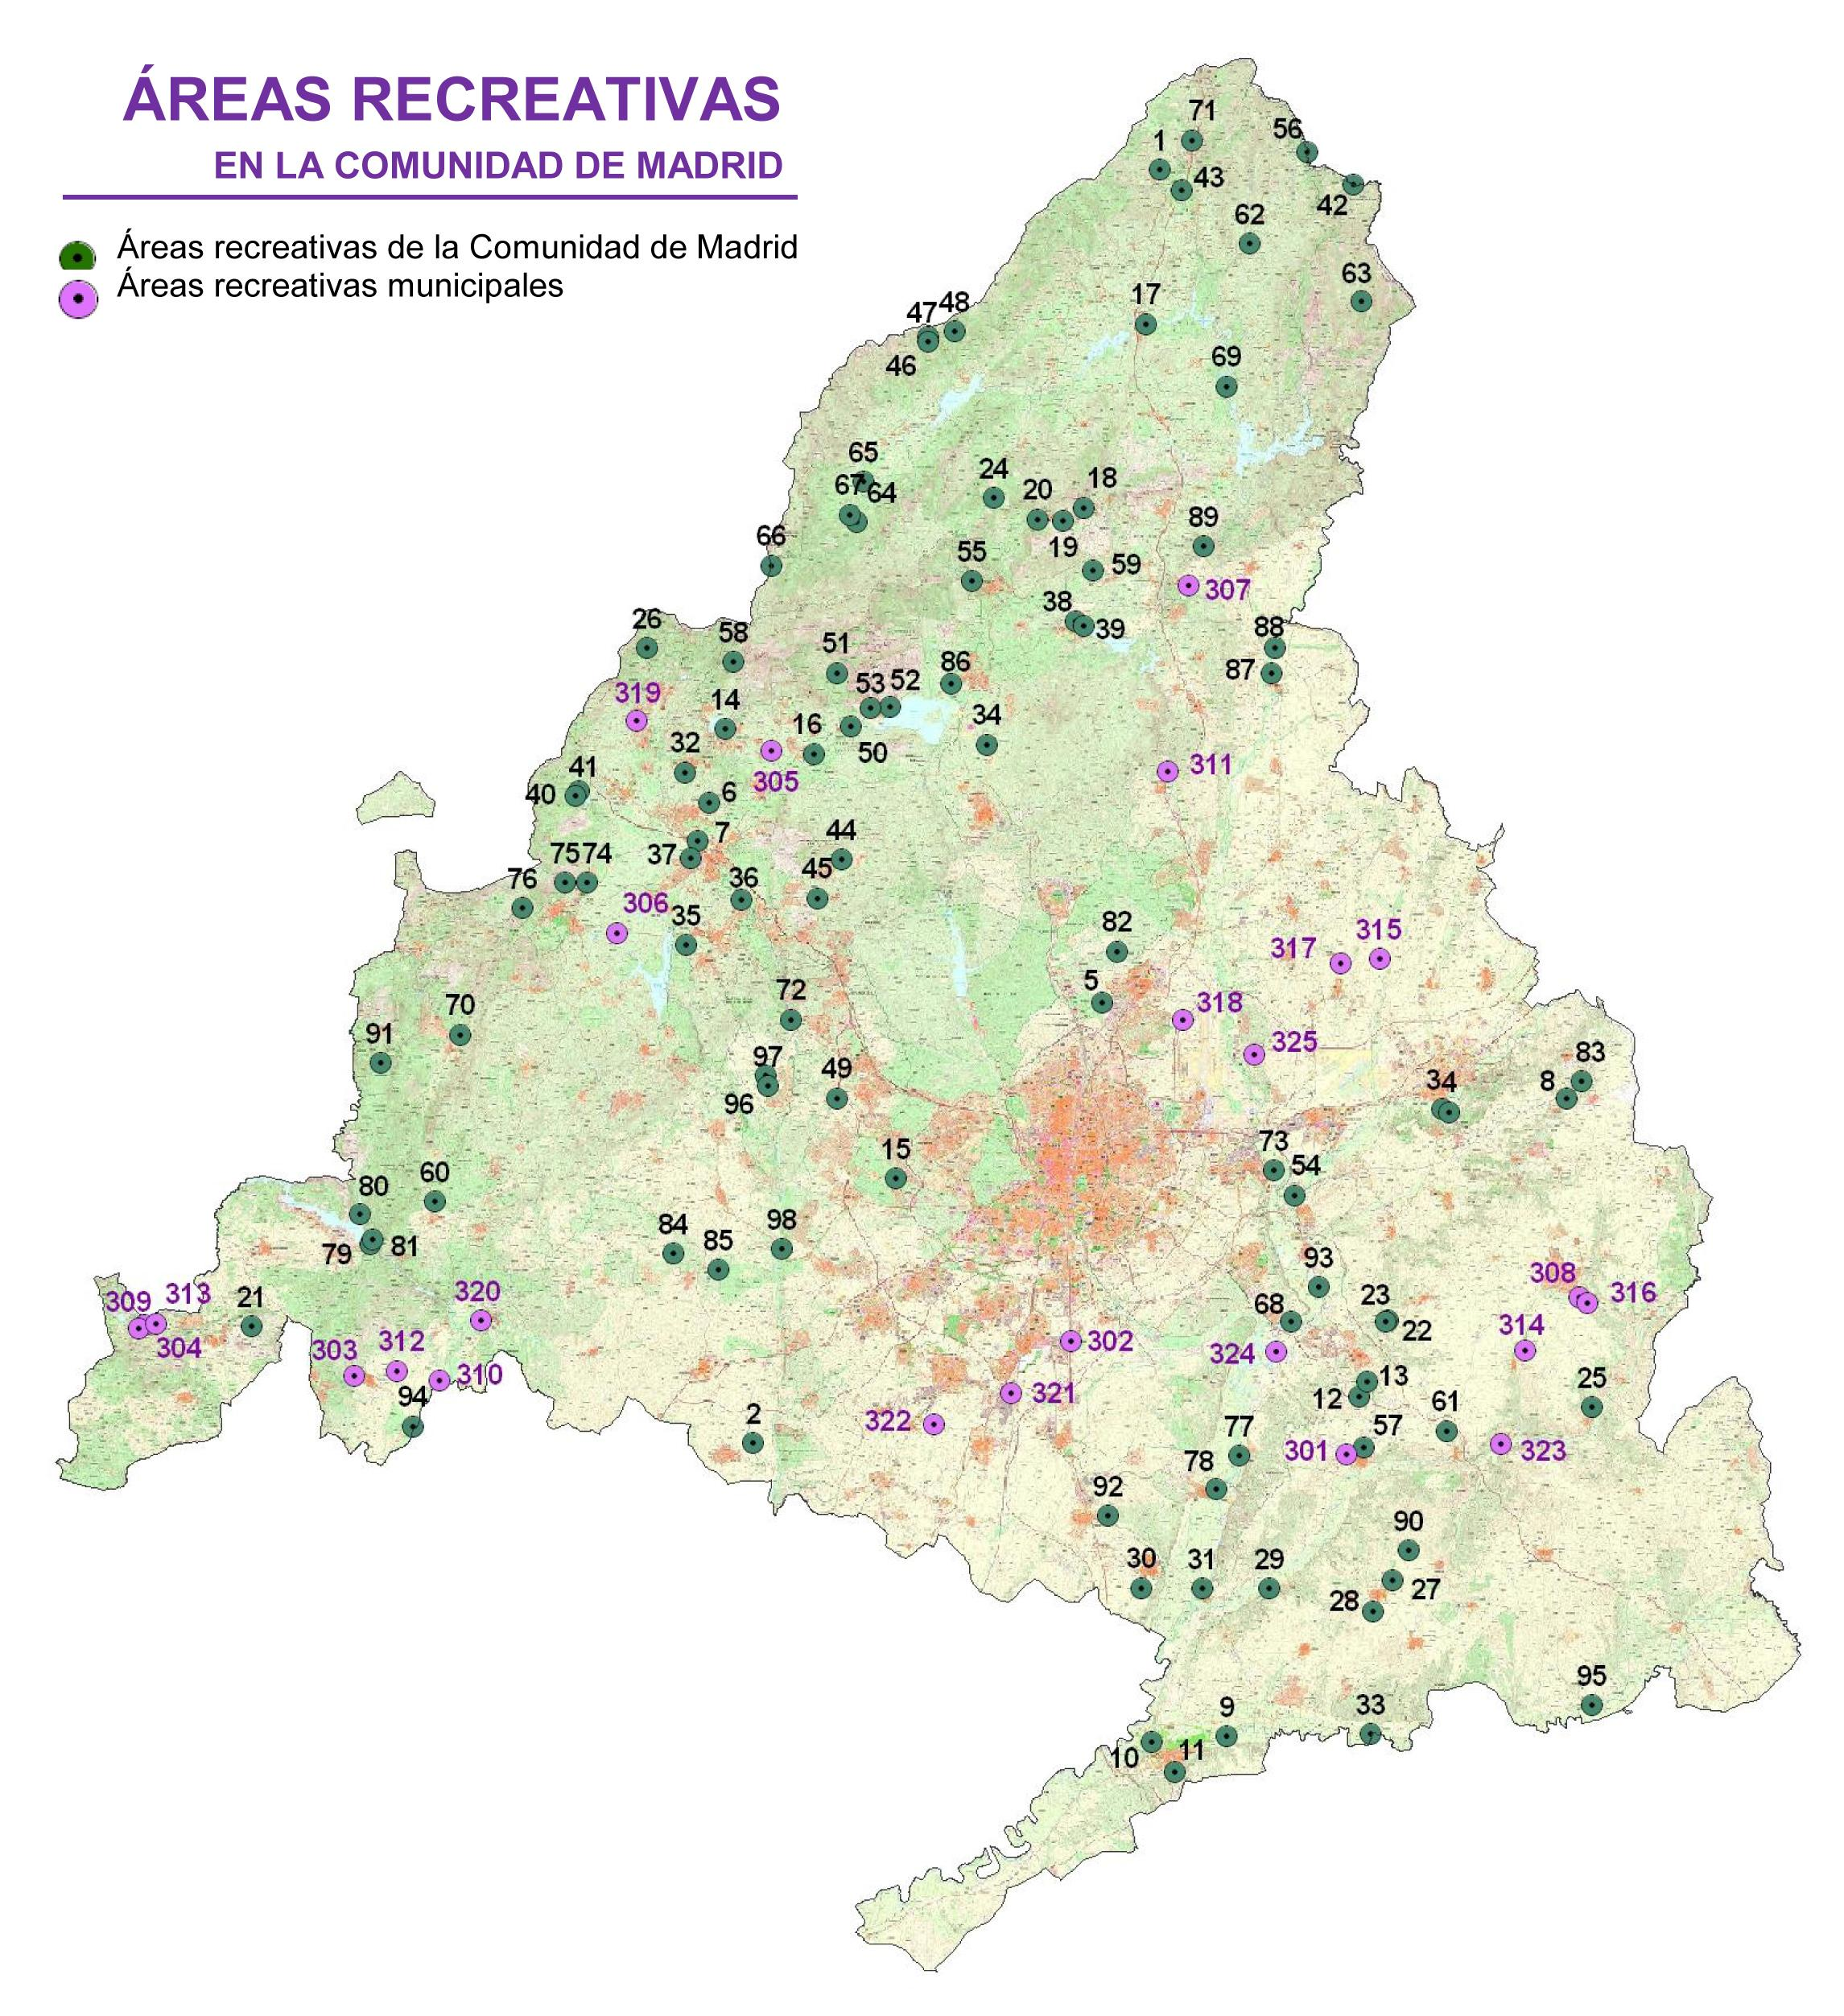 Mapa Áreas recreativas en la Comunidad de Madrid